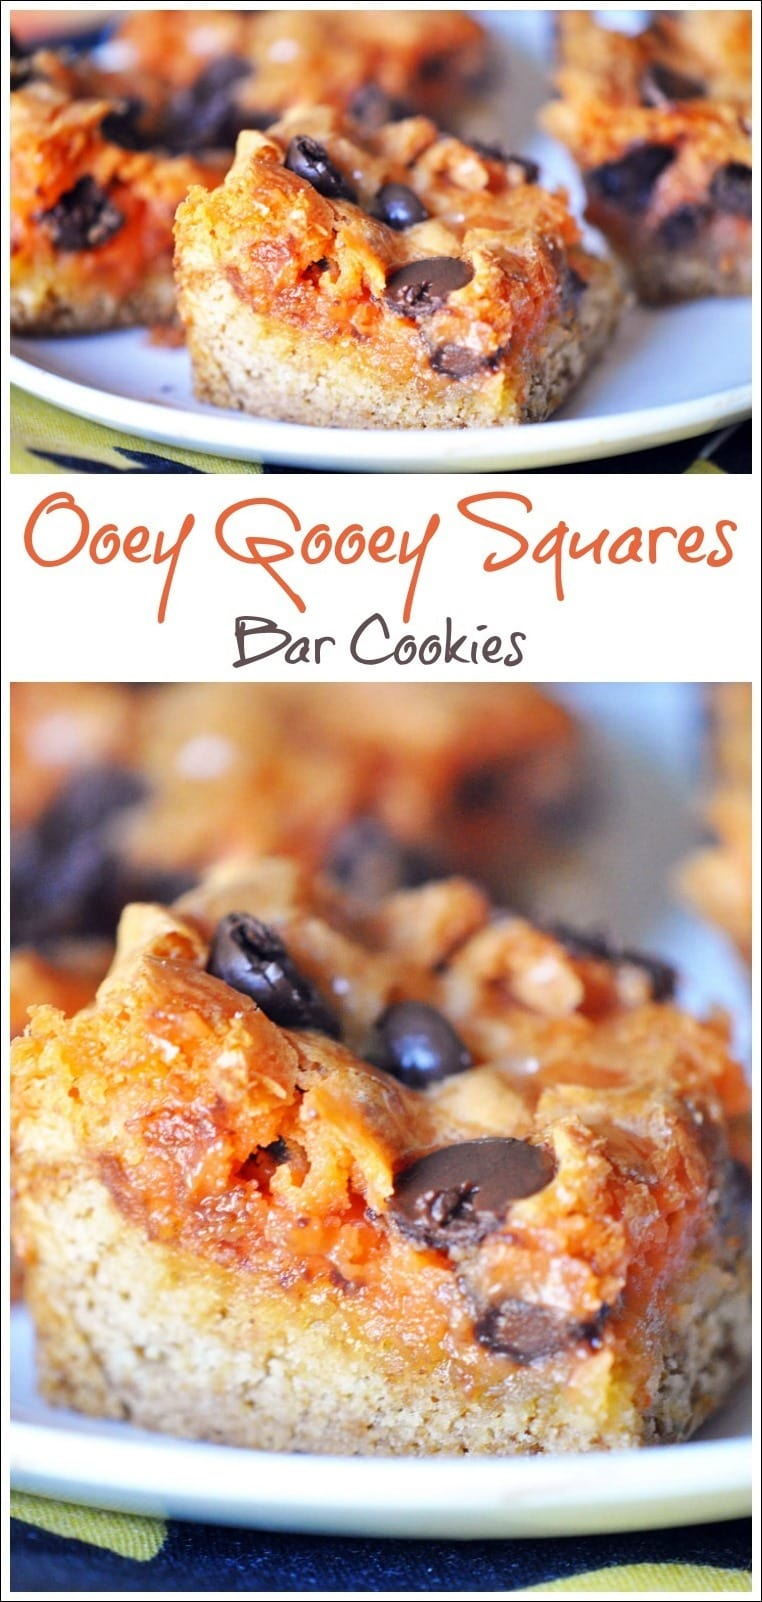 Need a quick Thanksgiving dessert recipe? This bar cookie recipe can easily be made gluten free and dairy free. Check out the quick and easy cookie recipe for Ooey Gooey Squares Bar Cookies by Holly Clegg at This Mama Cooks! On a Diet.